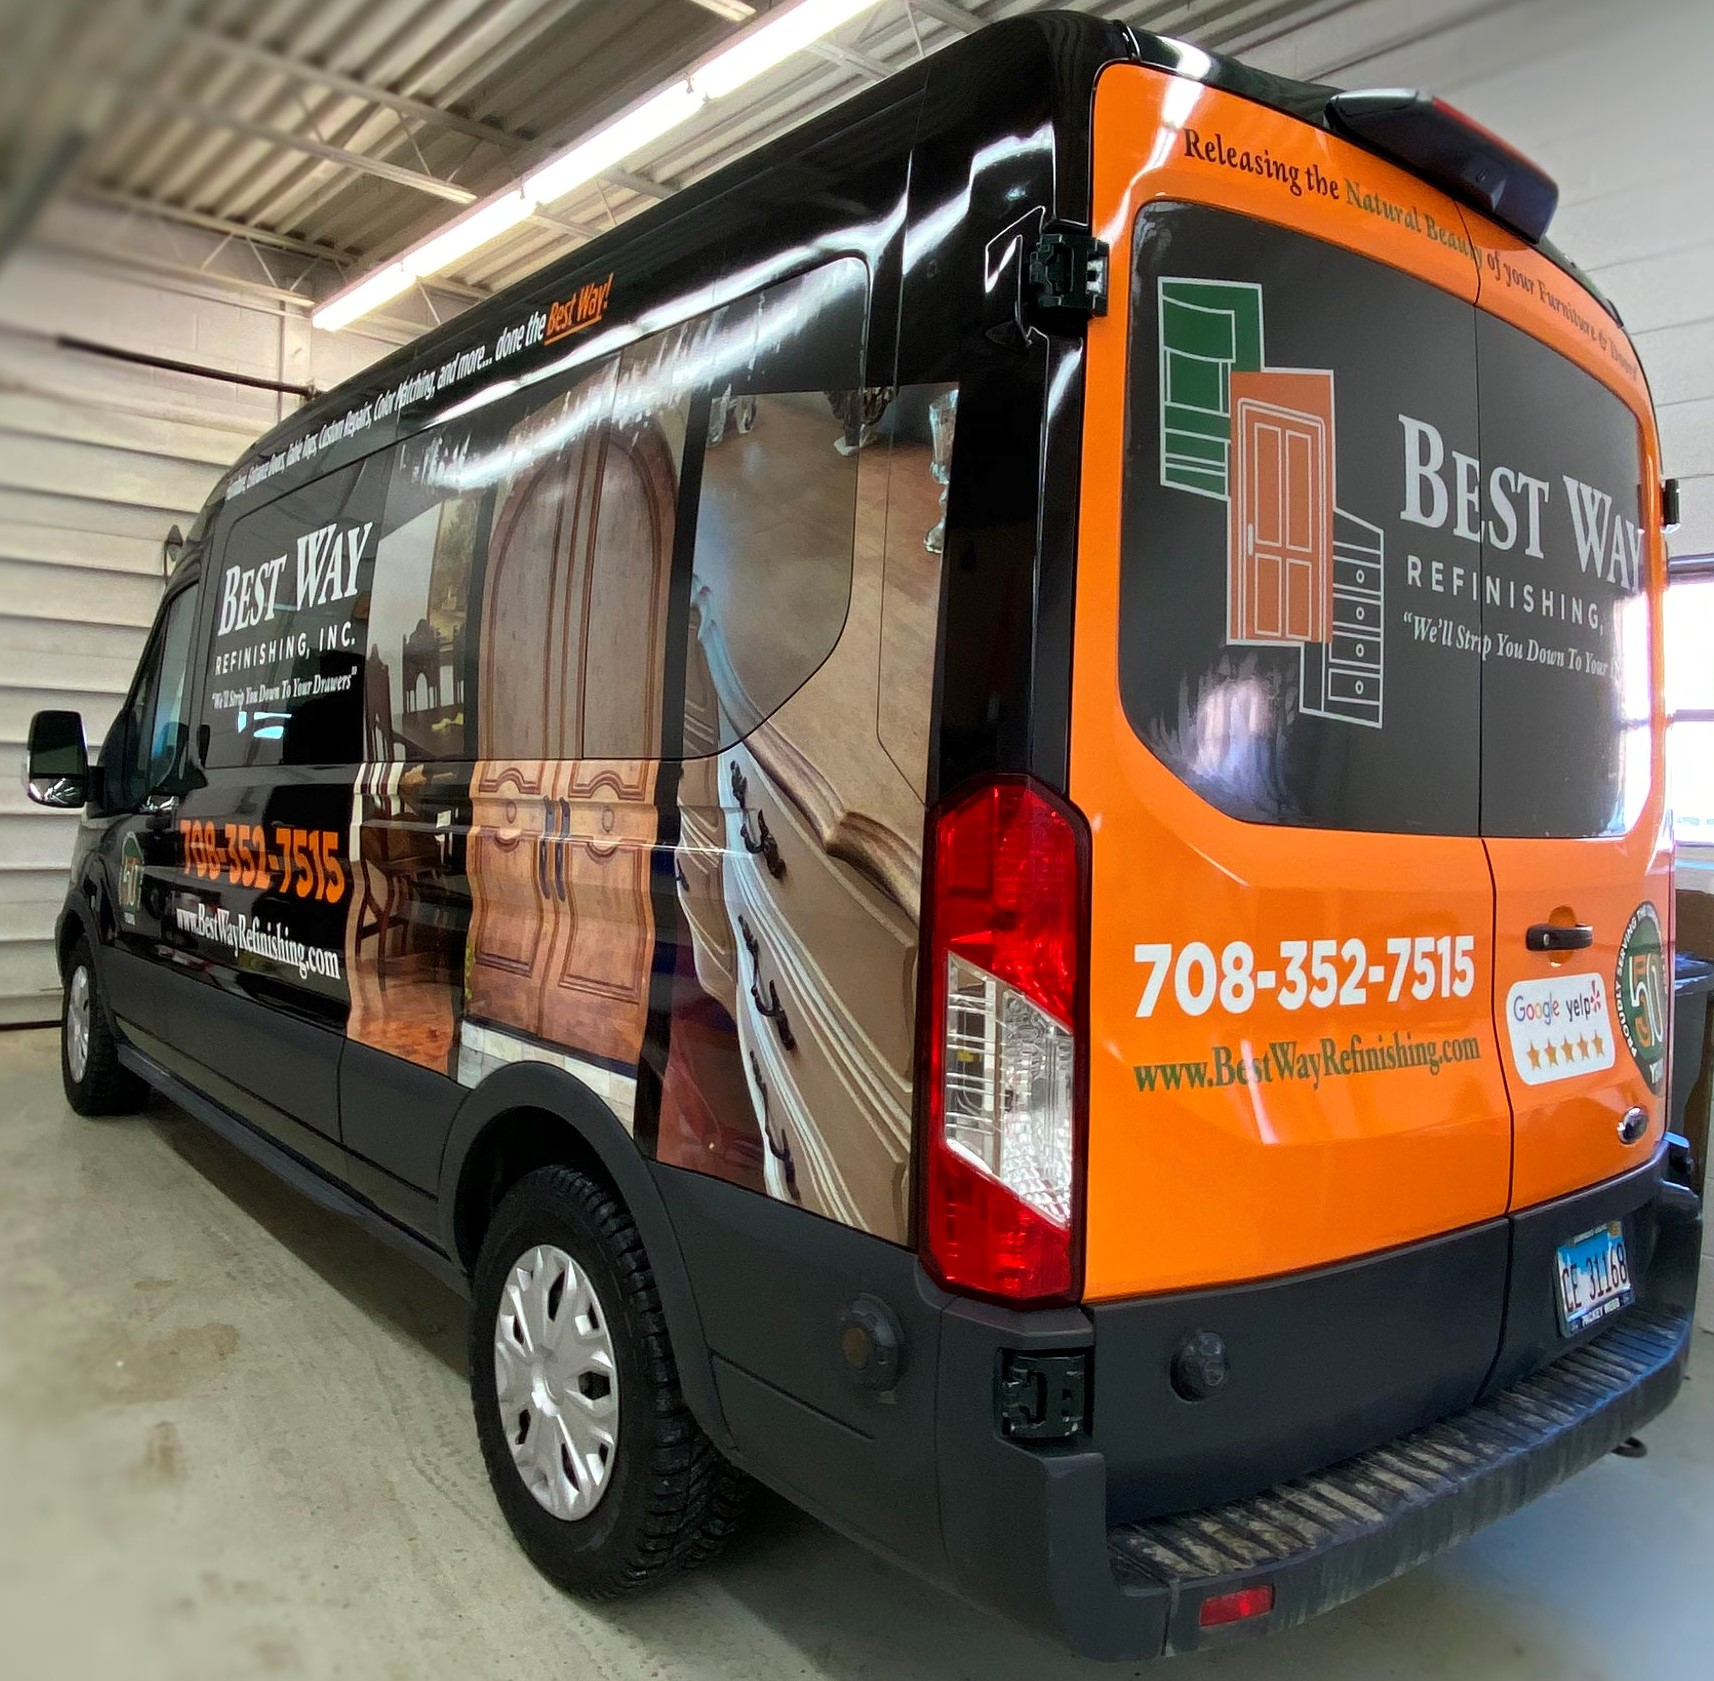 Best Way Refinishing Van Wrap